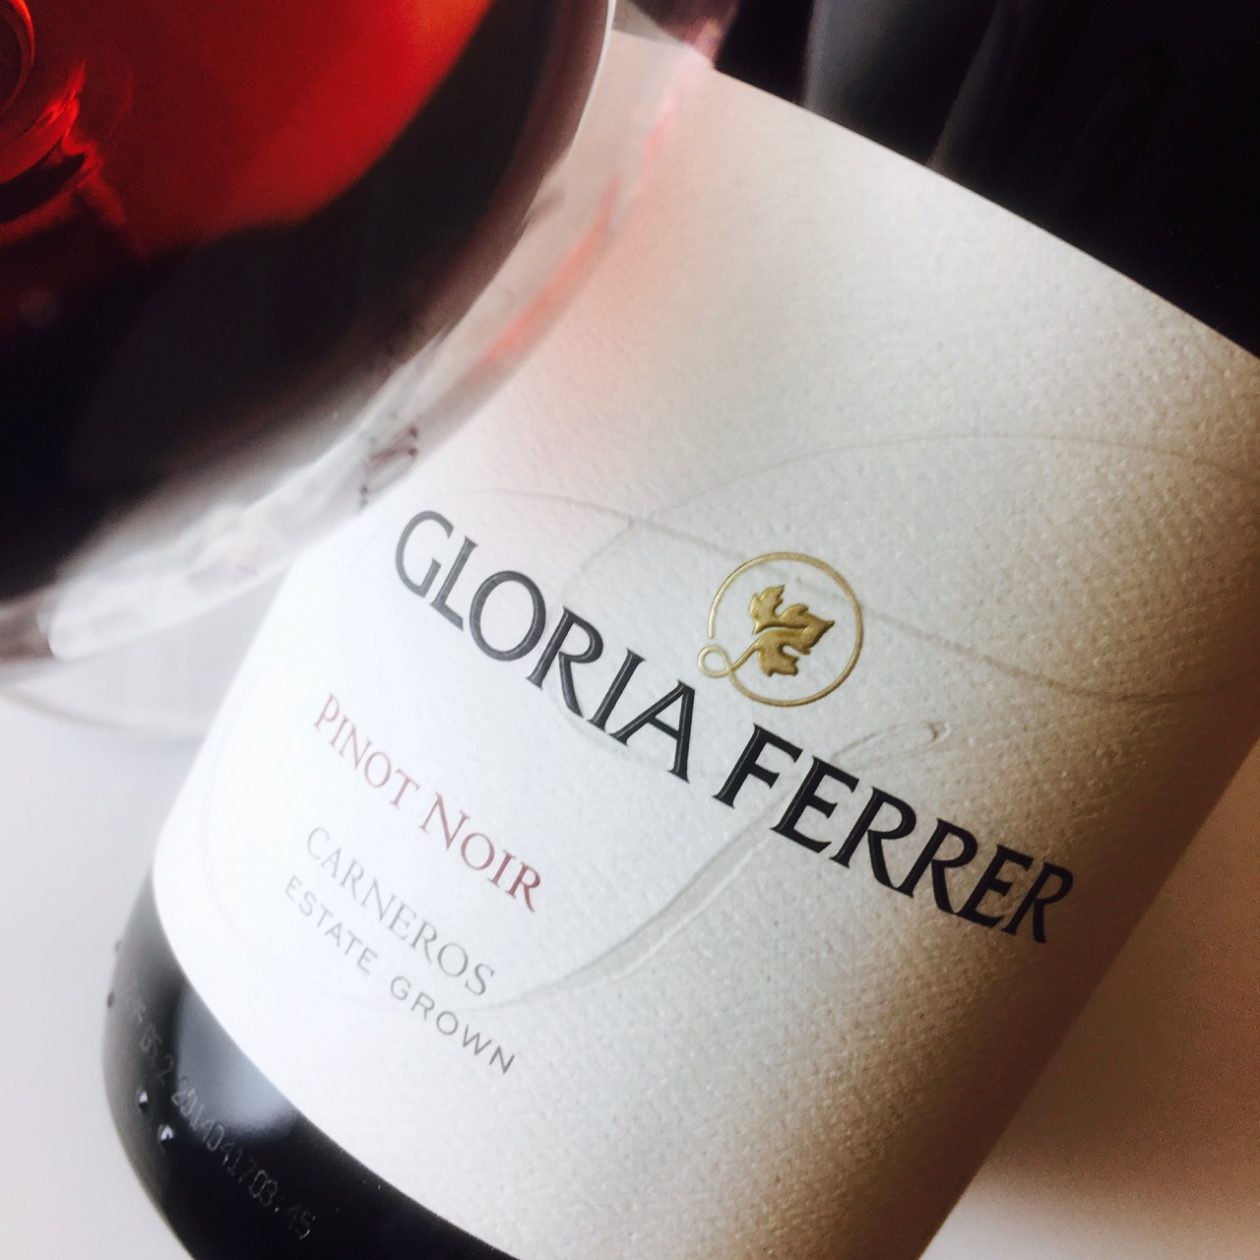 2013 Gloria Ferrer Pinot Noir Estate Carneros